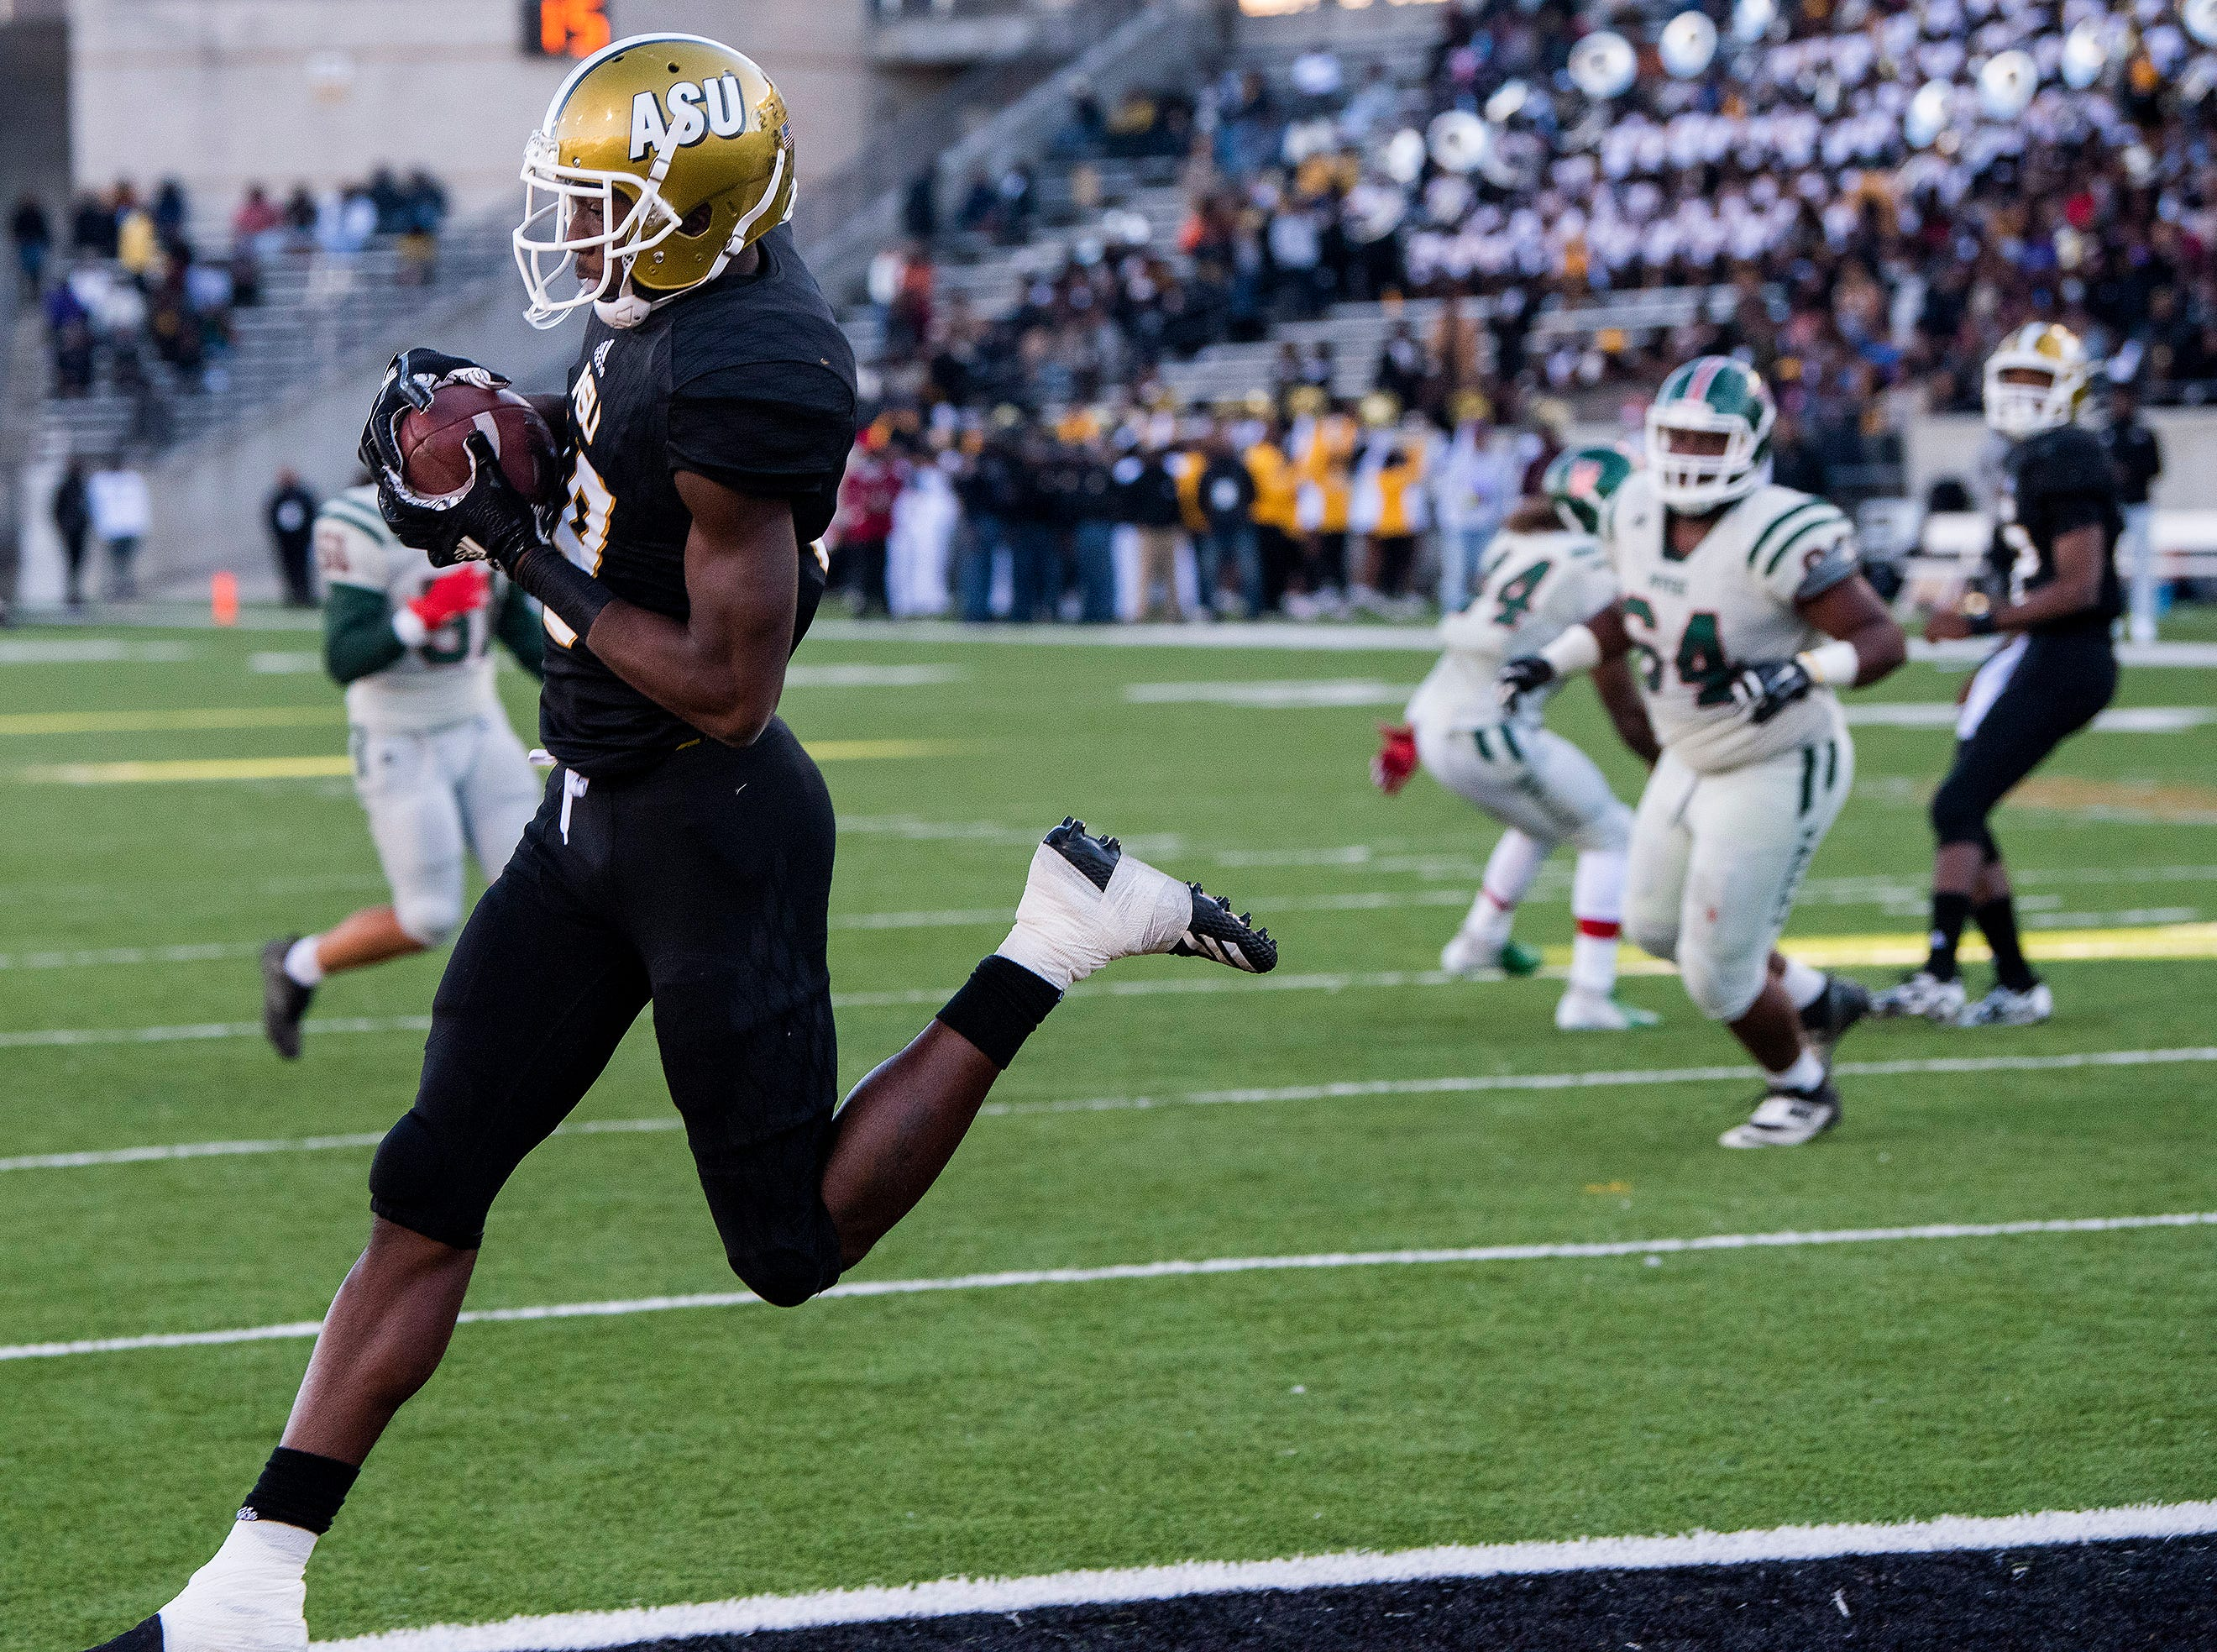 Alabama State University wide receiver Michael Jefferson (19)  catches a touchdown pass against Mississippi Valley State in first half action of the Turkey Day Classic at Hornet Stadium on the ASU campus in Montgomery, Ala., on Thanksgiving Day, Thursday November 22, 2018.